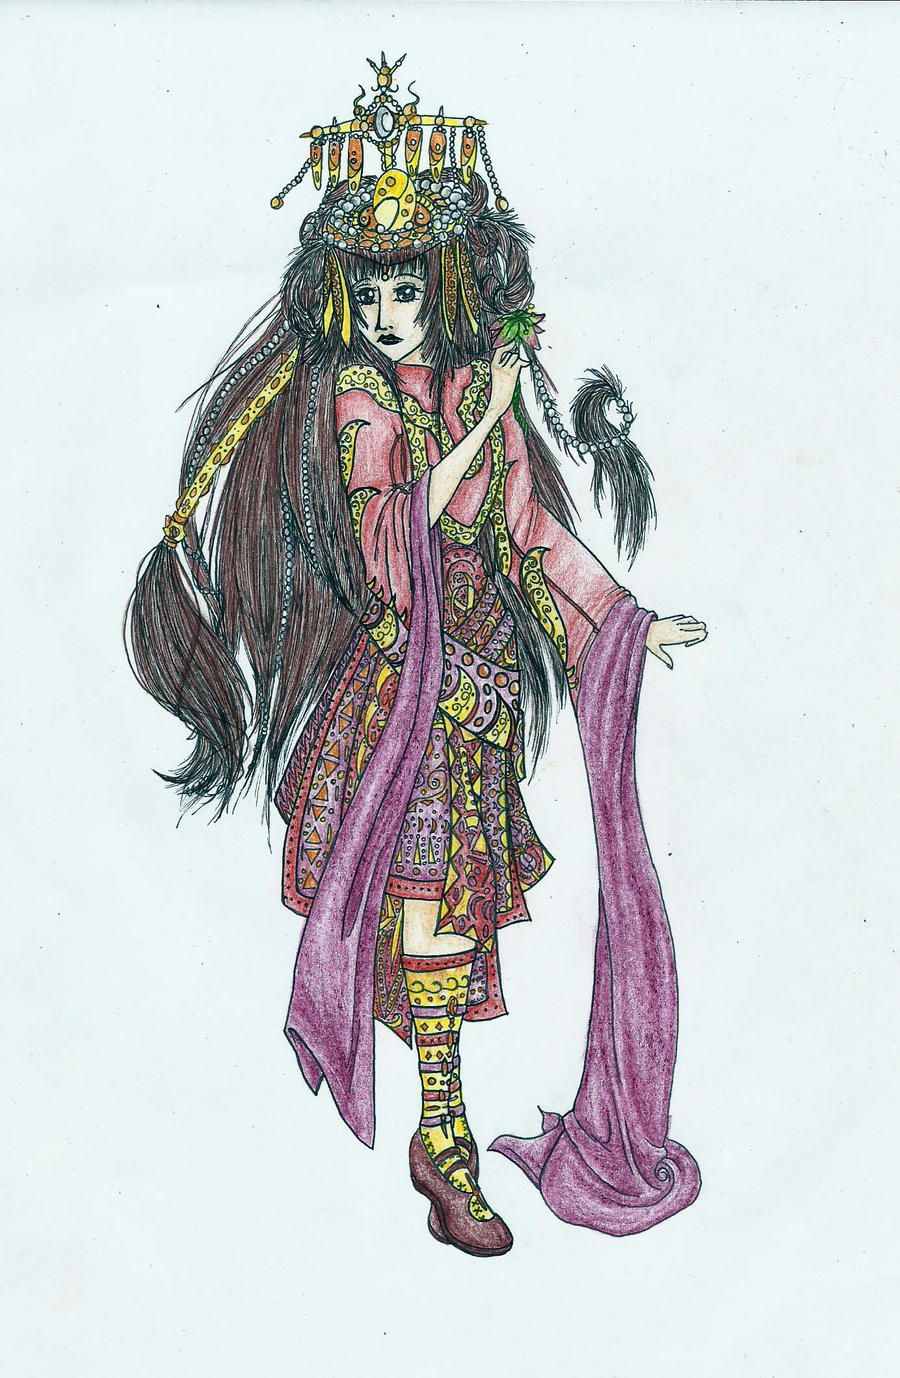 Woman with colorful costume by MidoriBara